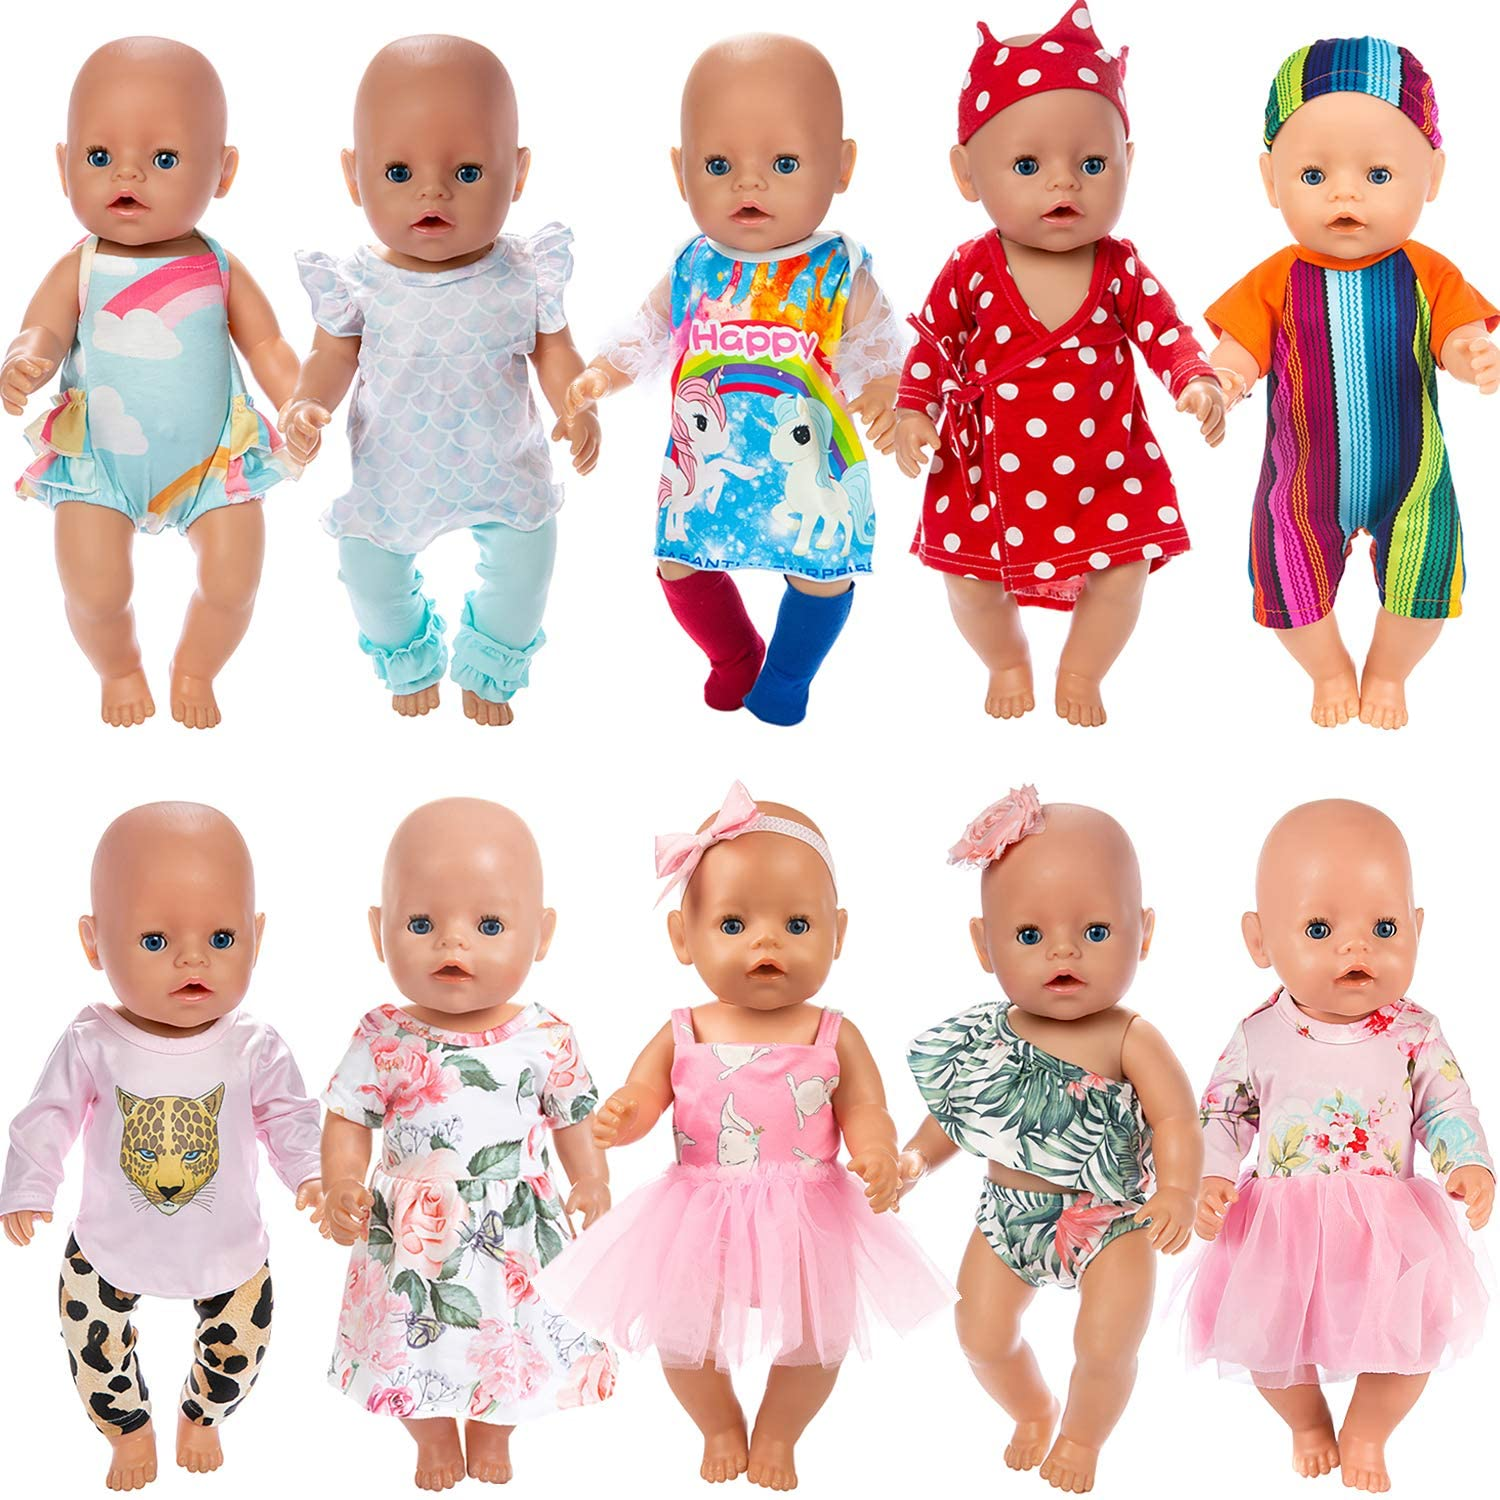 Our Generation Doll Ecore Fun 10 Sets American 18 Inch Doll Clothes and Accessories Doll Outfits Pajamas Dresses Hair Clips and Sunglasses Fit for American Doll My Life Doll